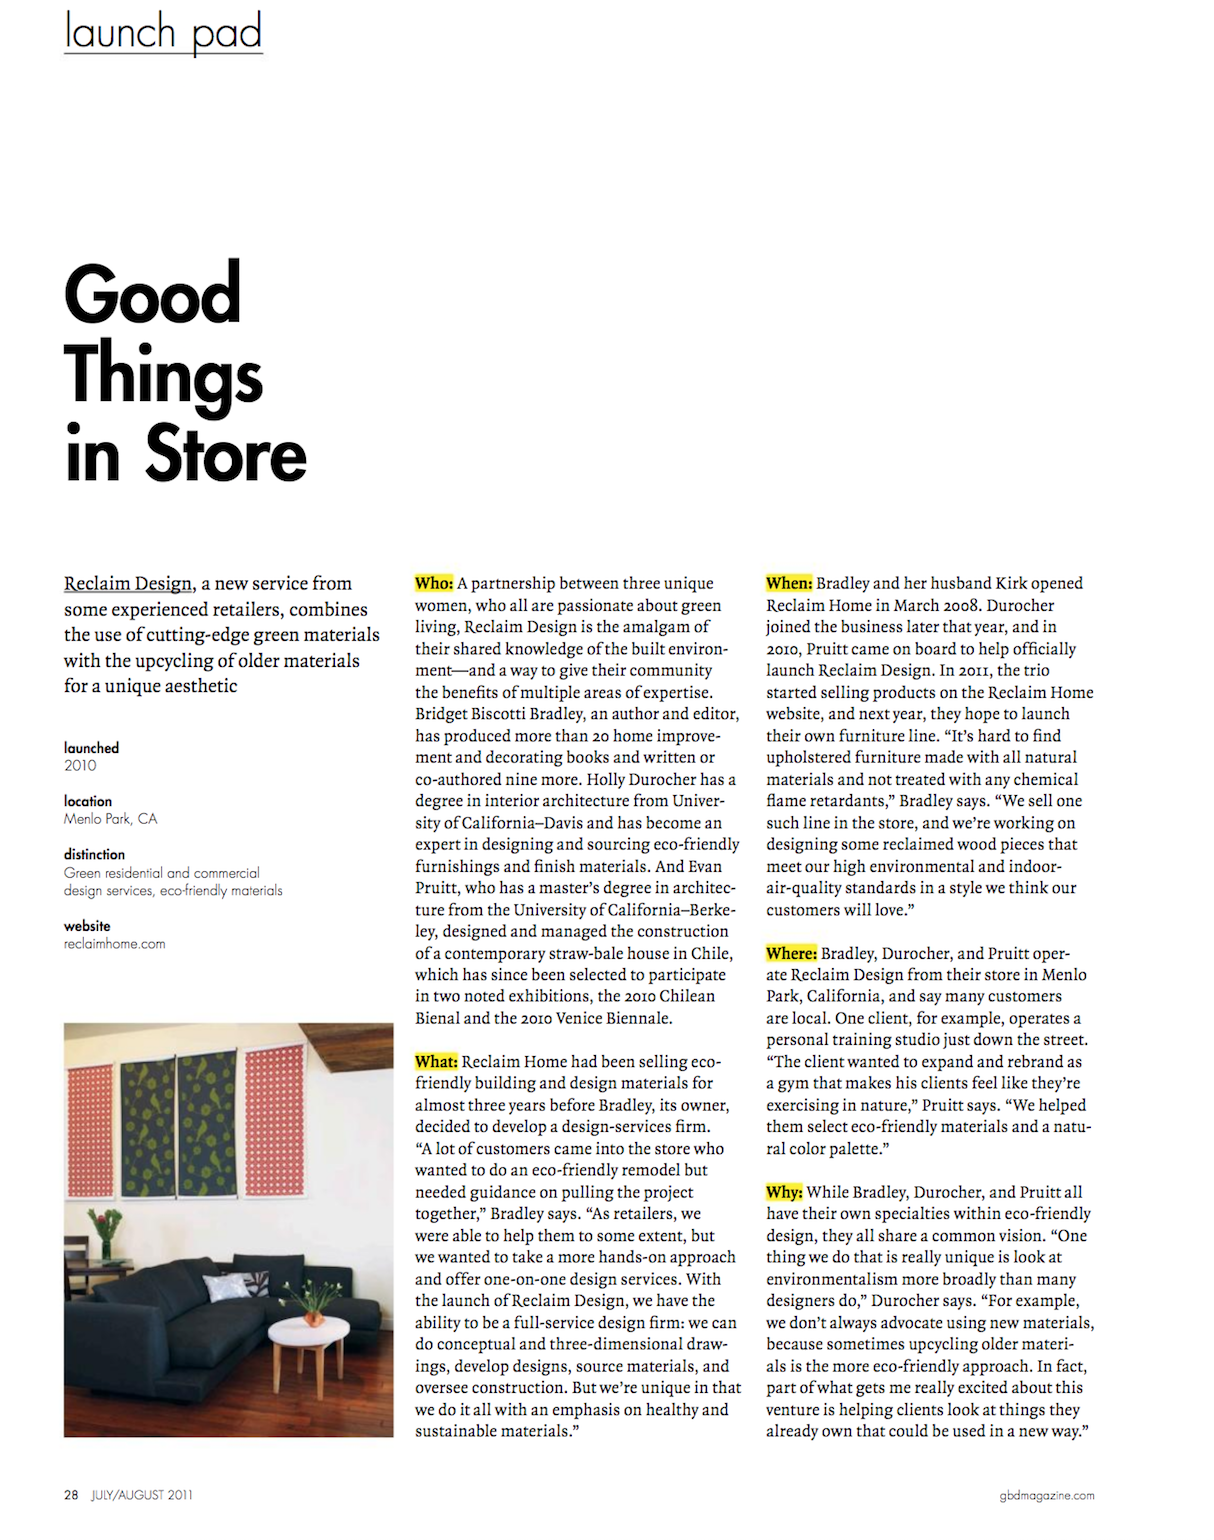 Good Things in Store 1pg - GBDMagazine.png